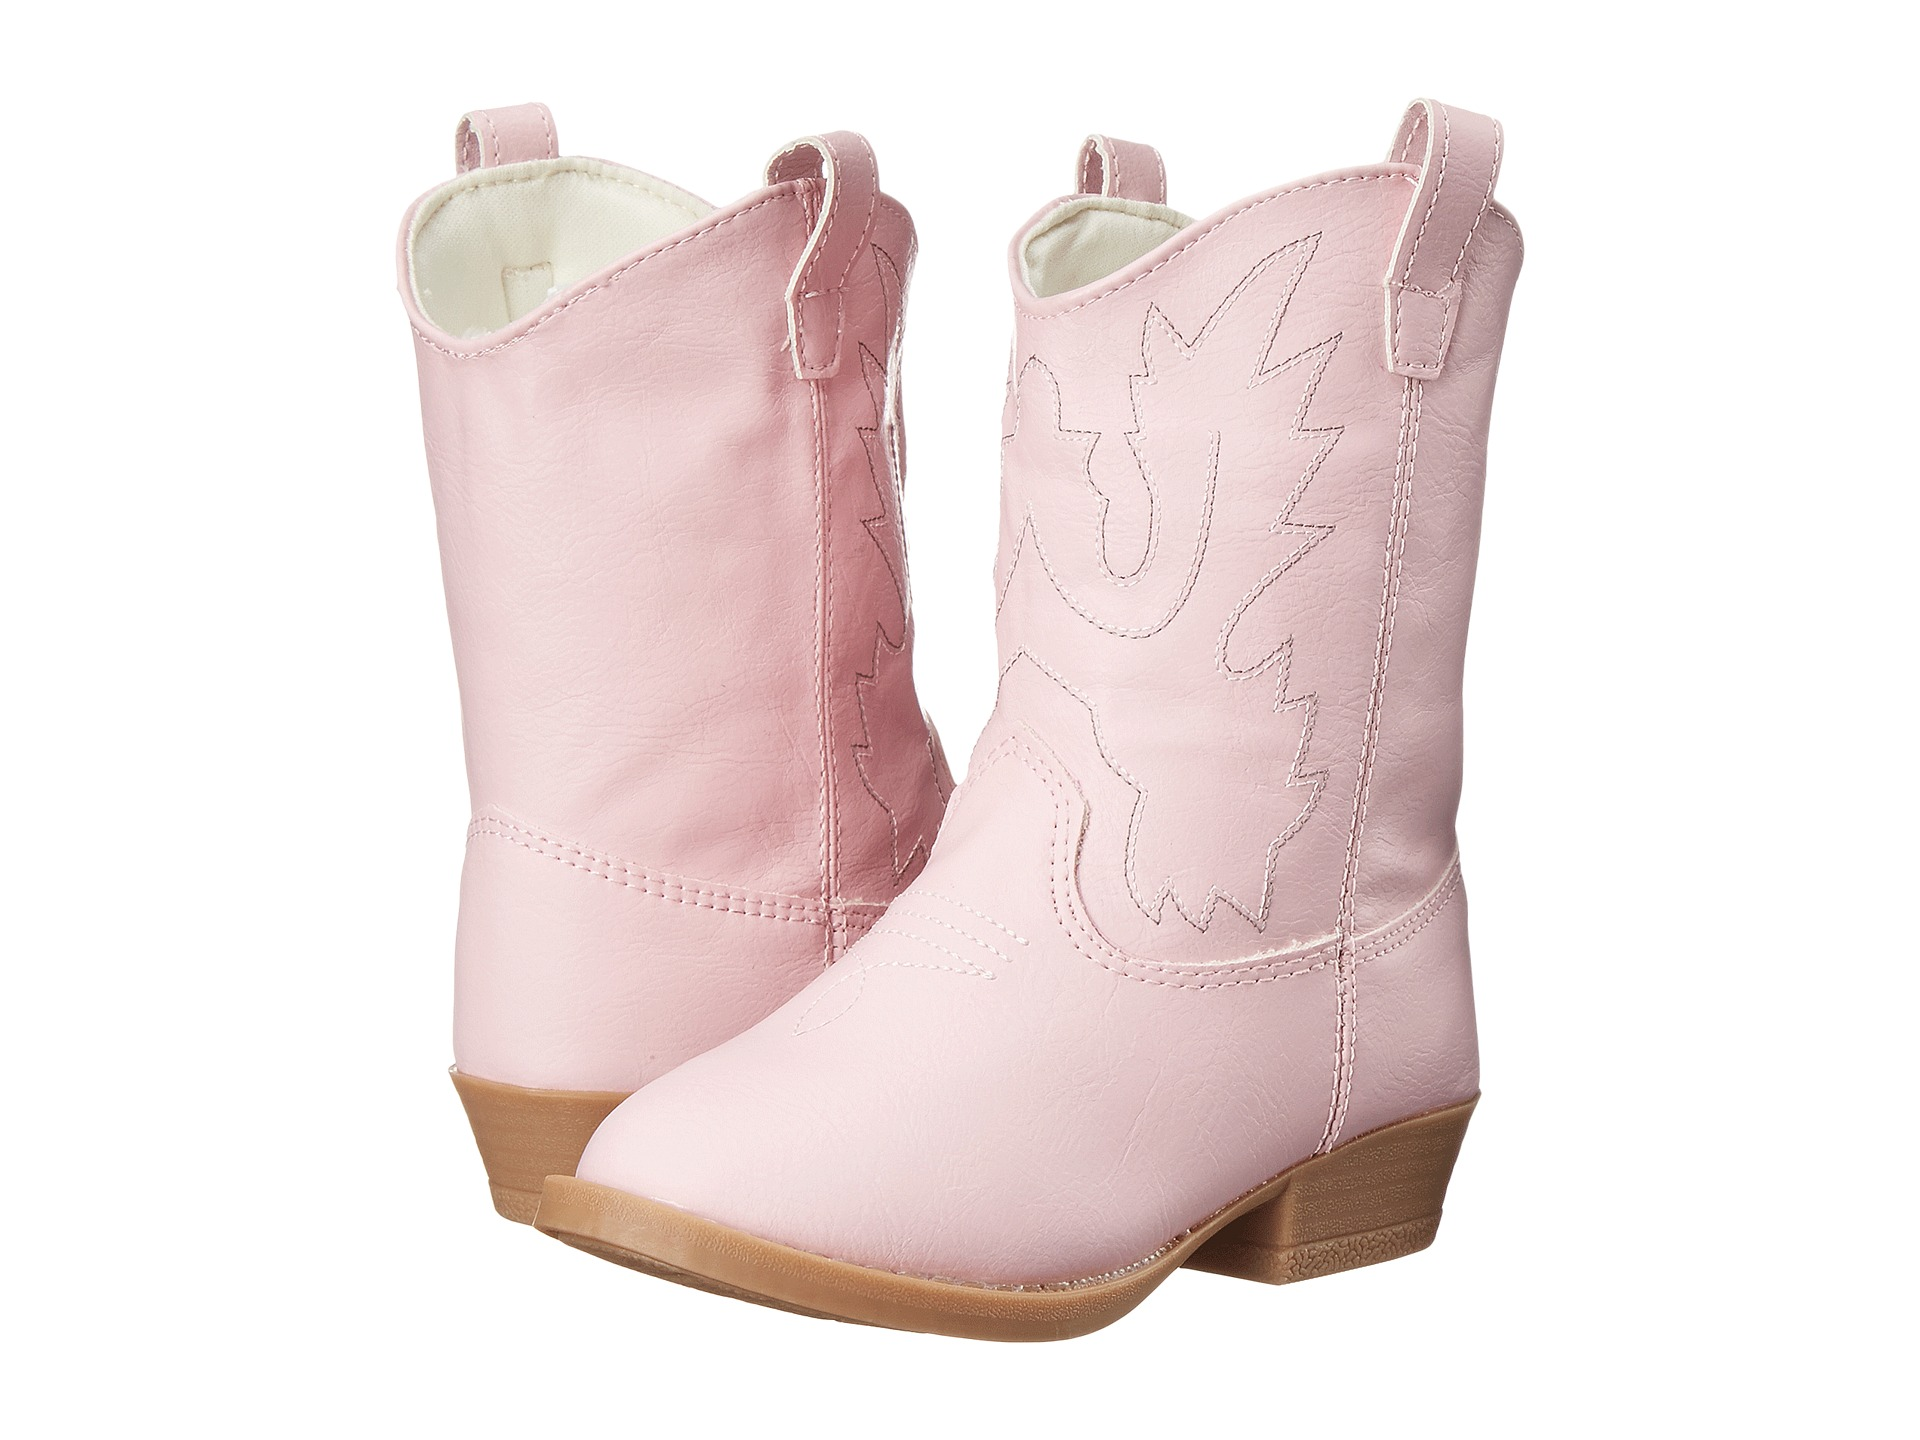 Boots Cowboy Boots Pink | Shipped Free at Zappos